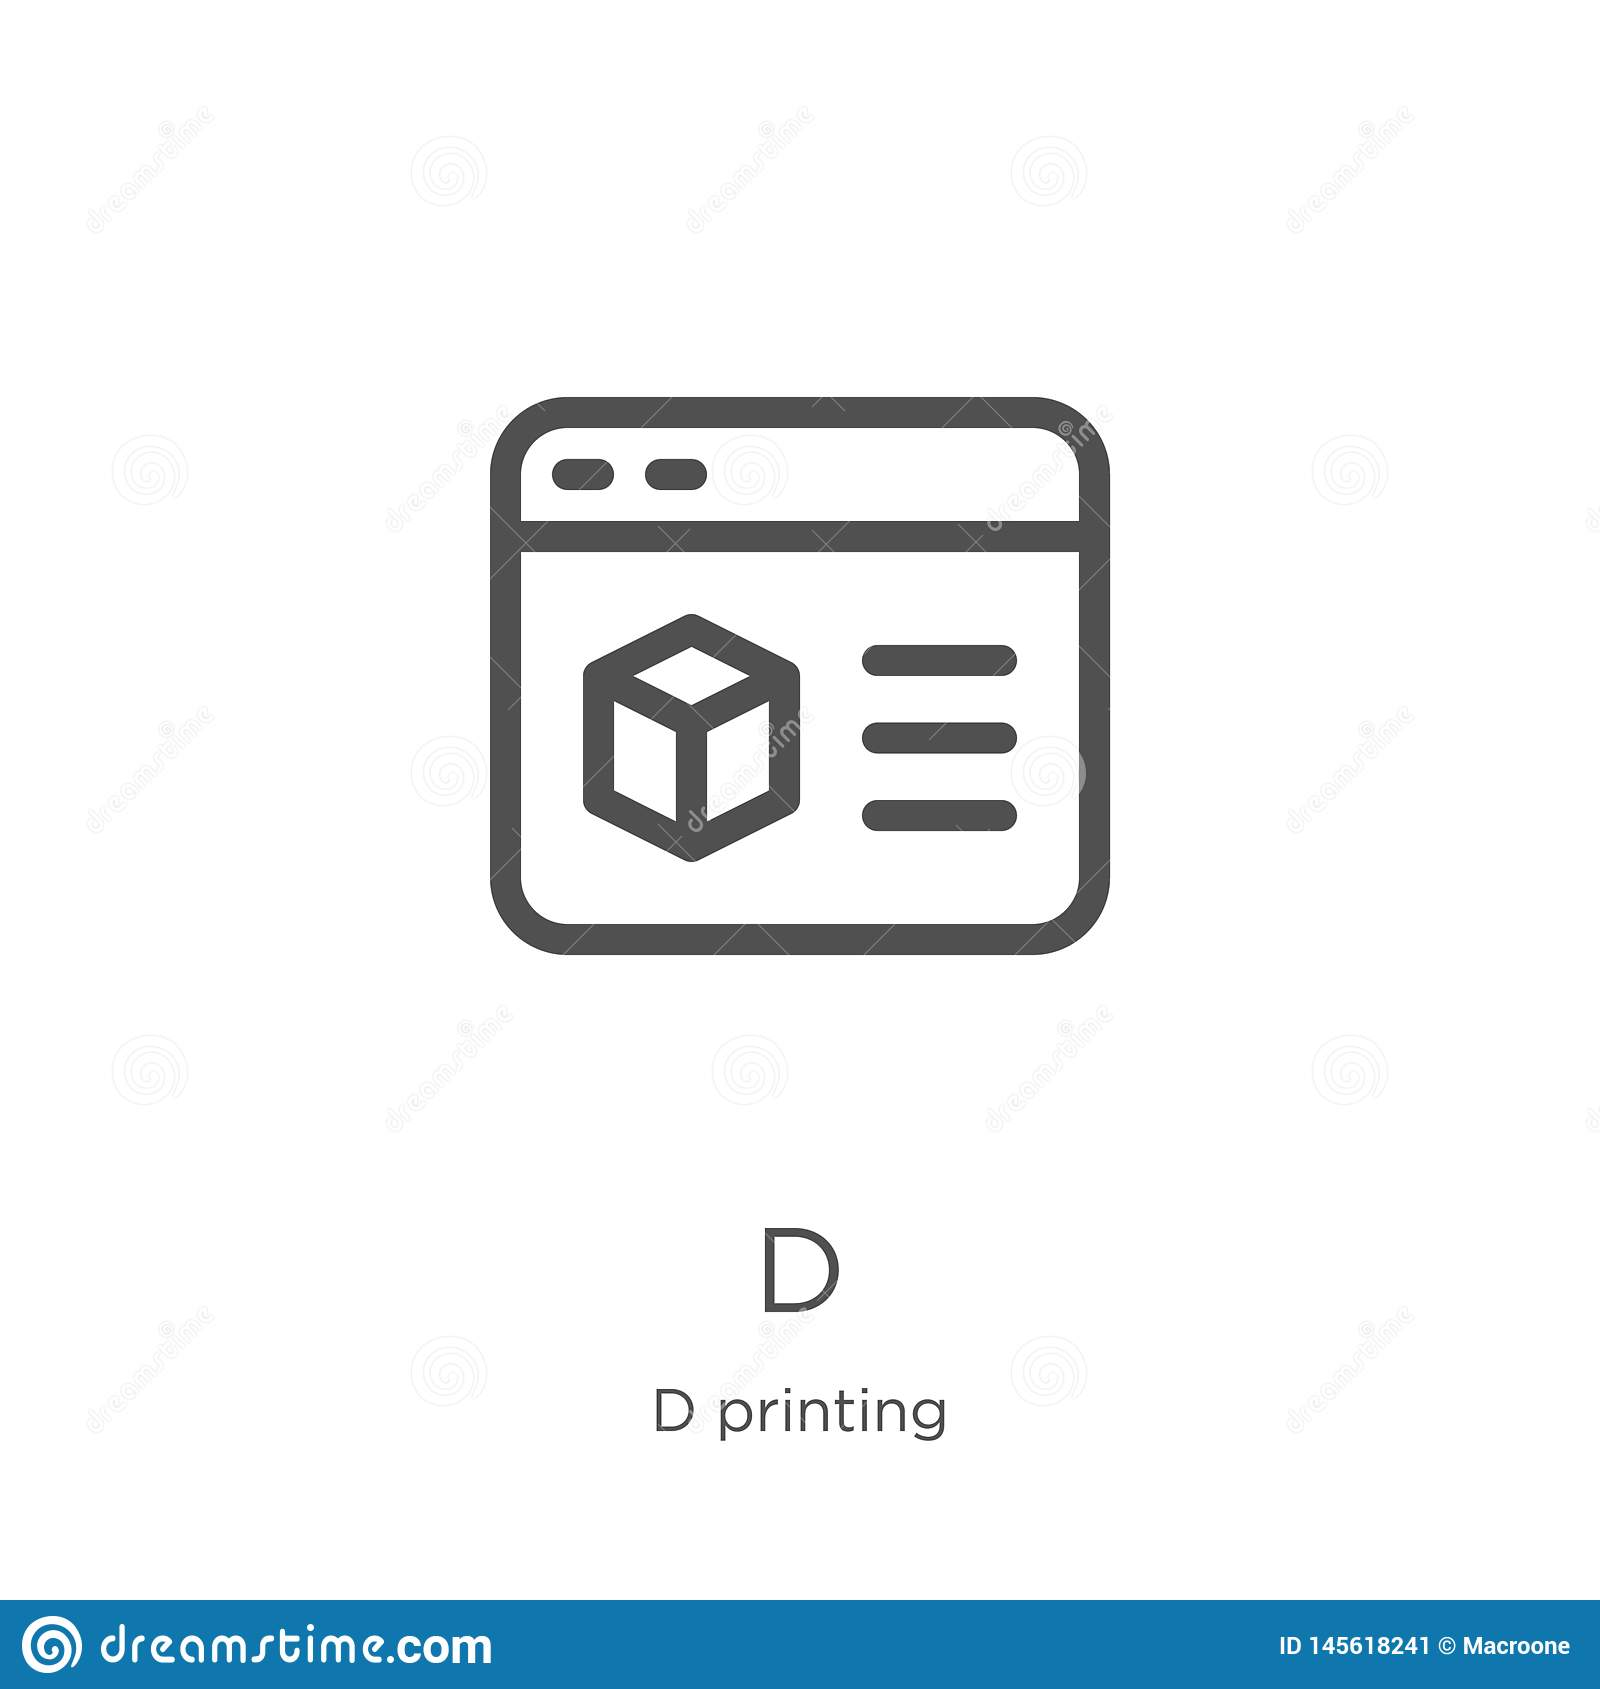 d icon vector from d printing collection. Thin line d outline icon vector illustration. Outline, thin line d icon for website